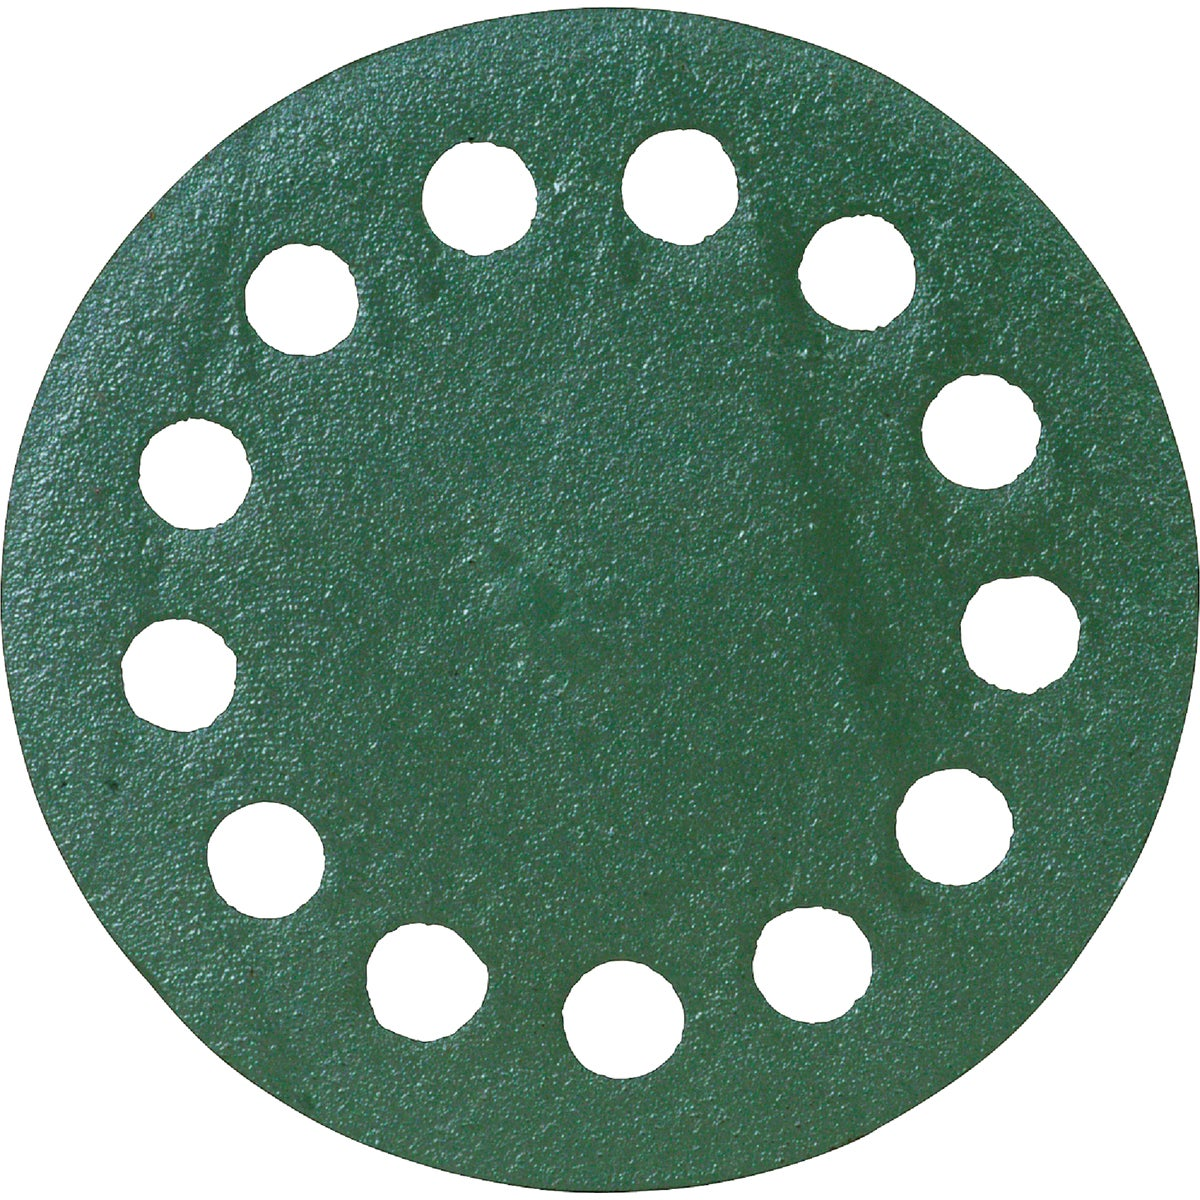 4-7/8 CAST IRON STRAINER - 866-S2I by Sioux Chief Mfg